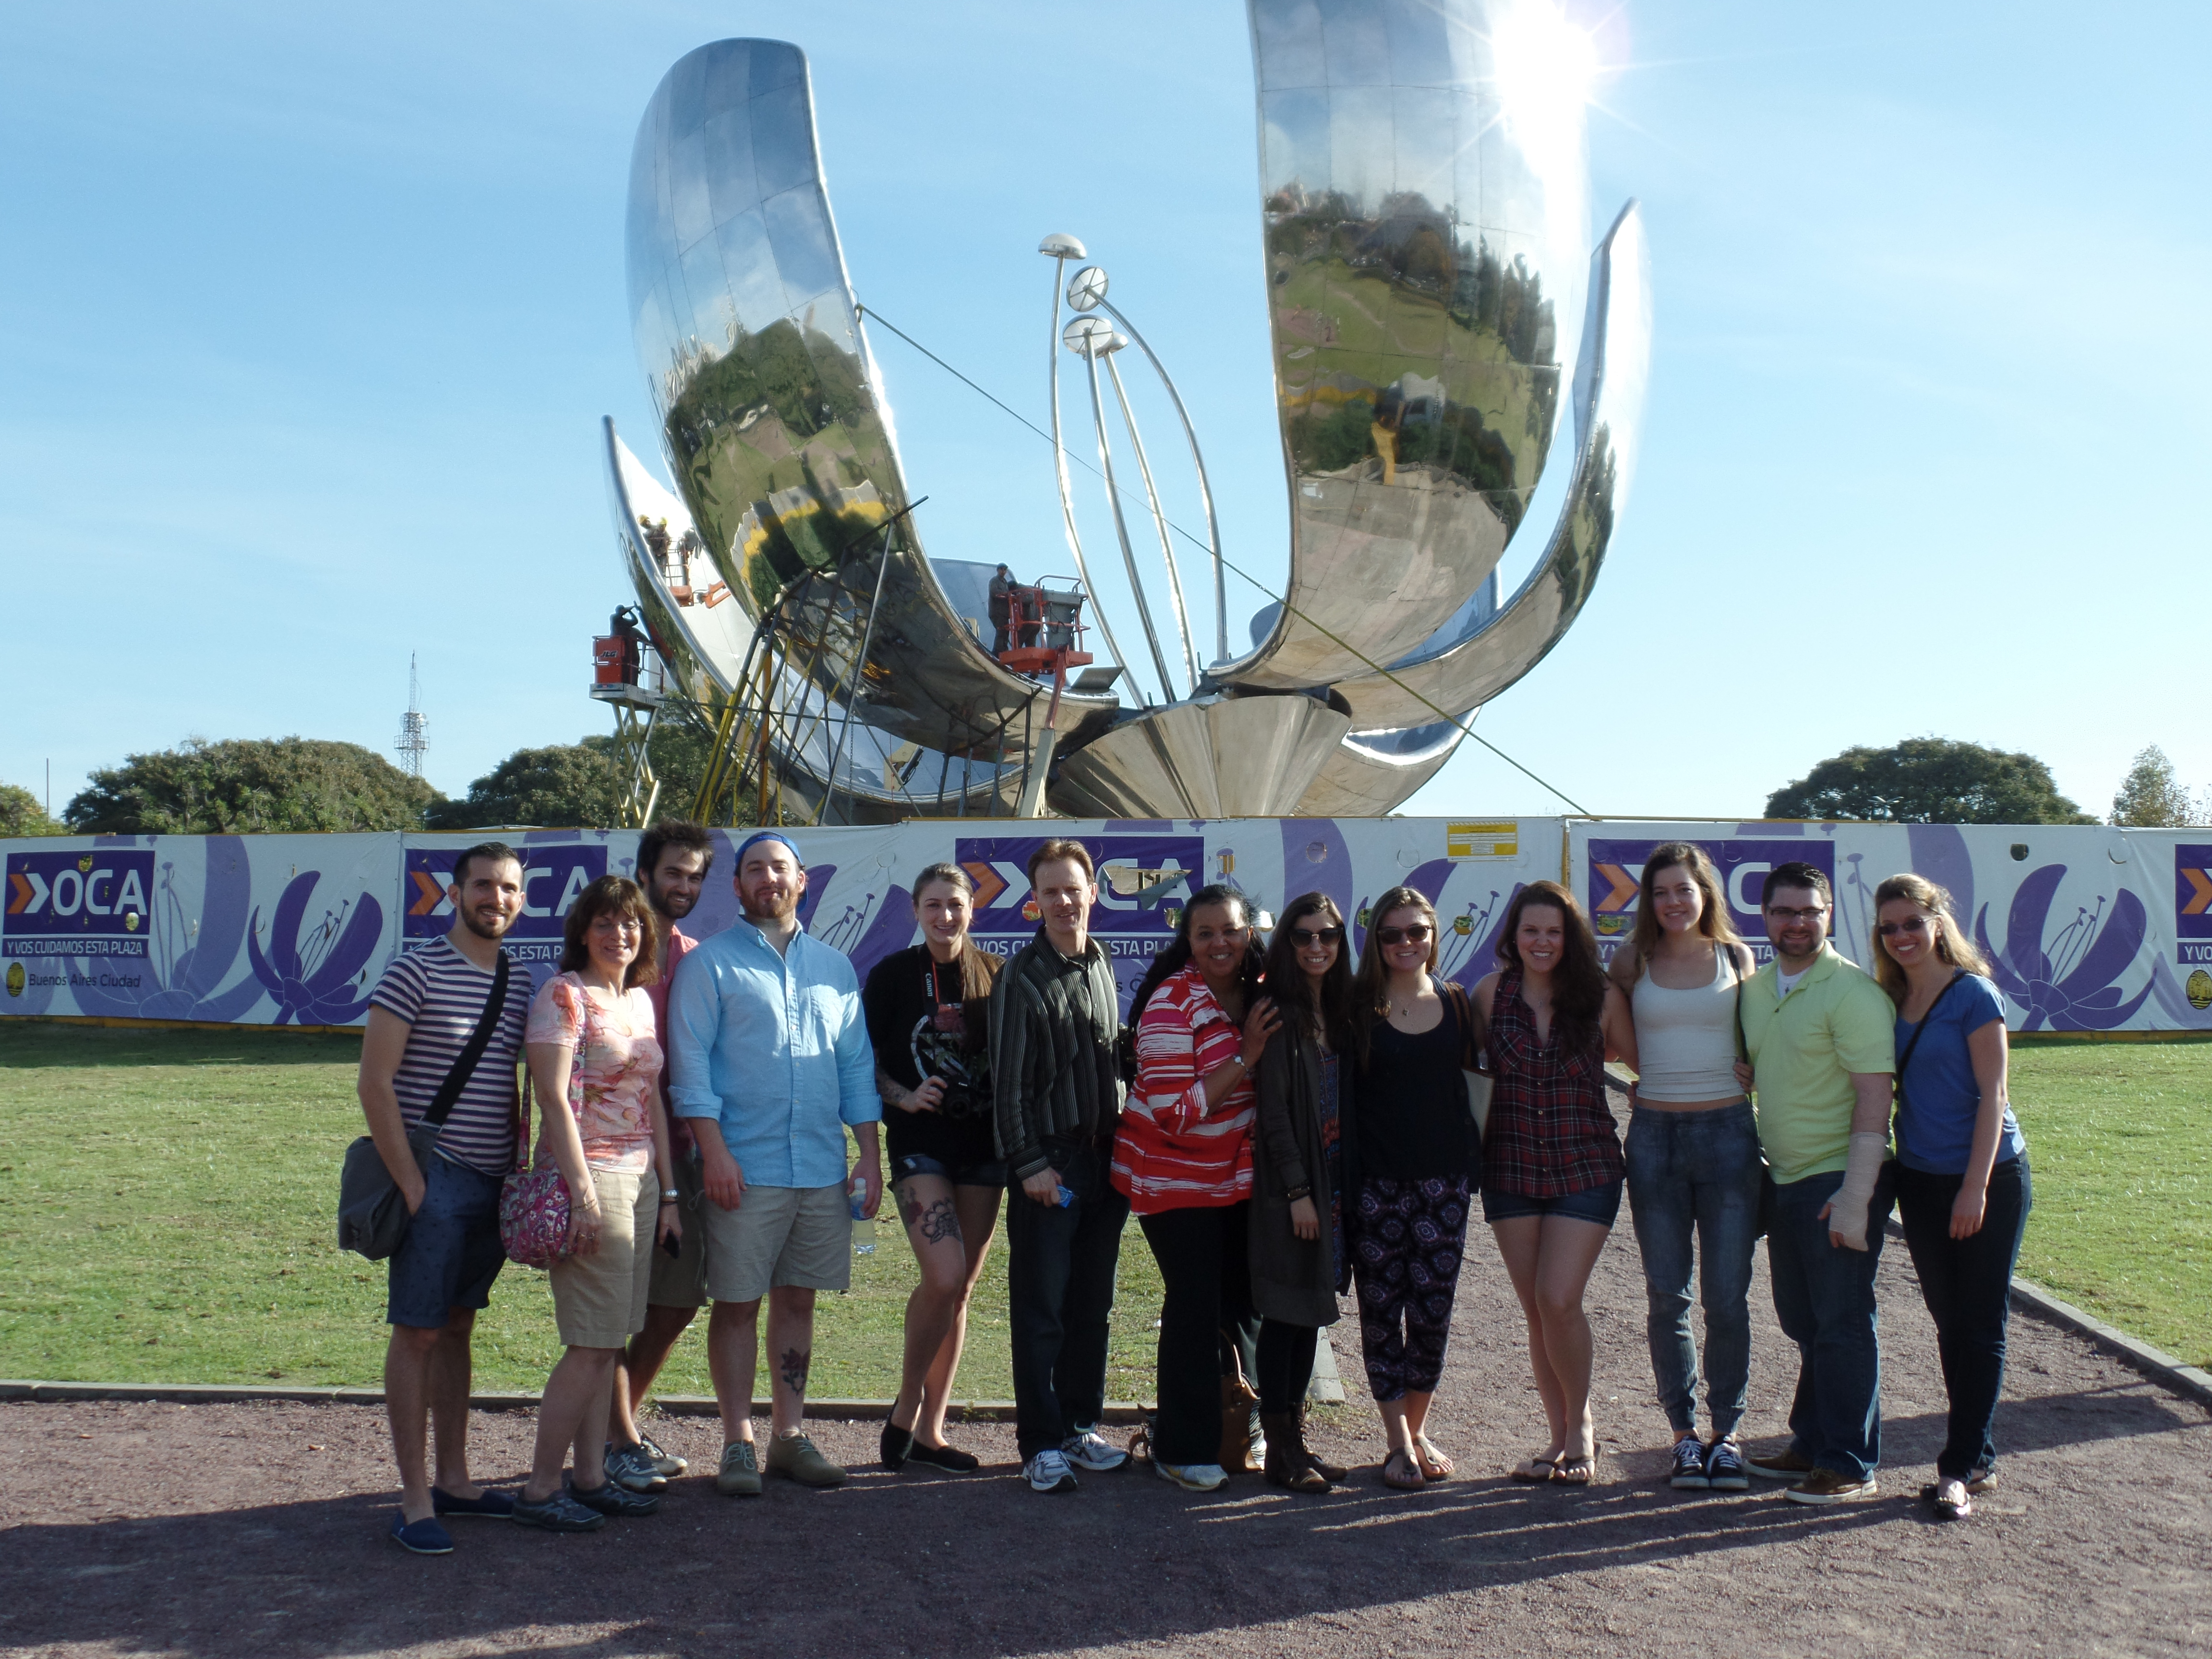 Some of the gang posing in front of the Flower Sculpture in Buenos Aires